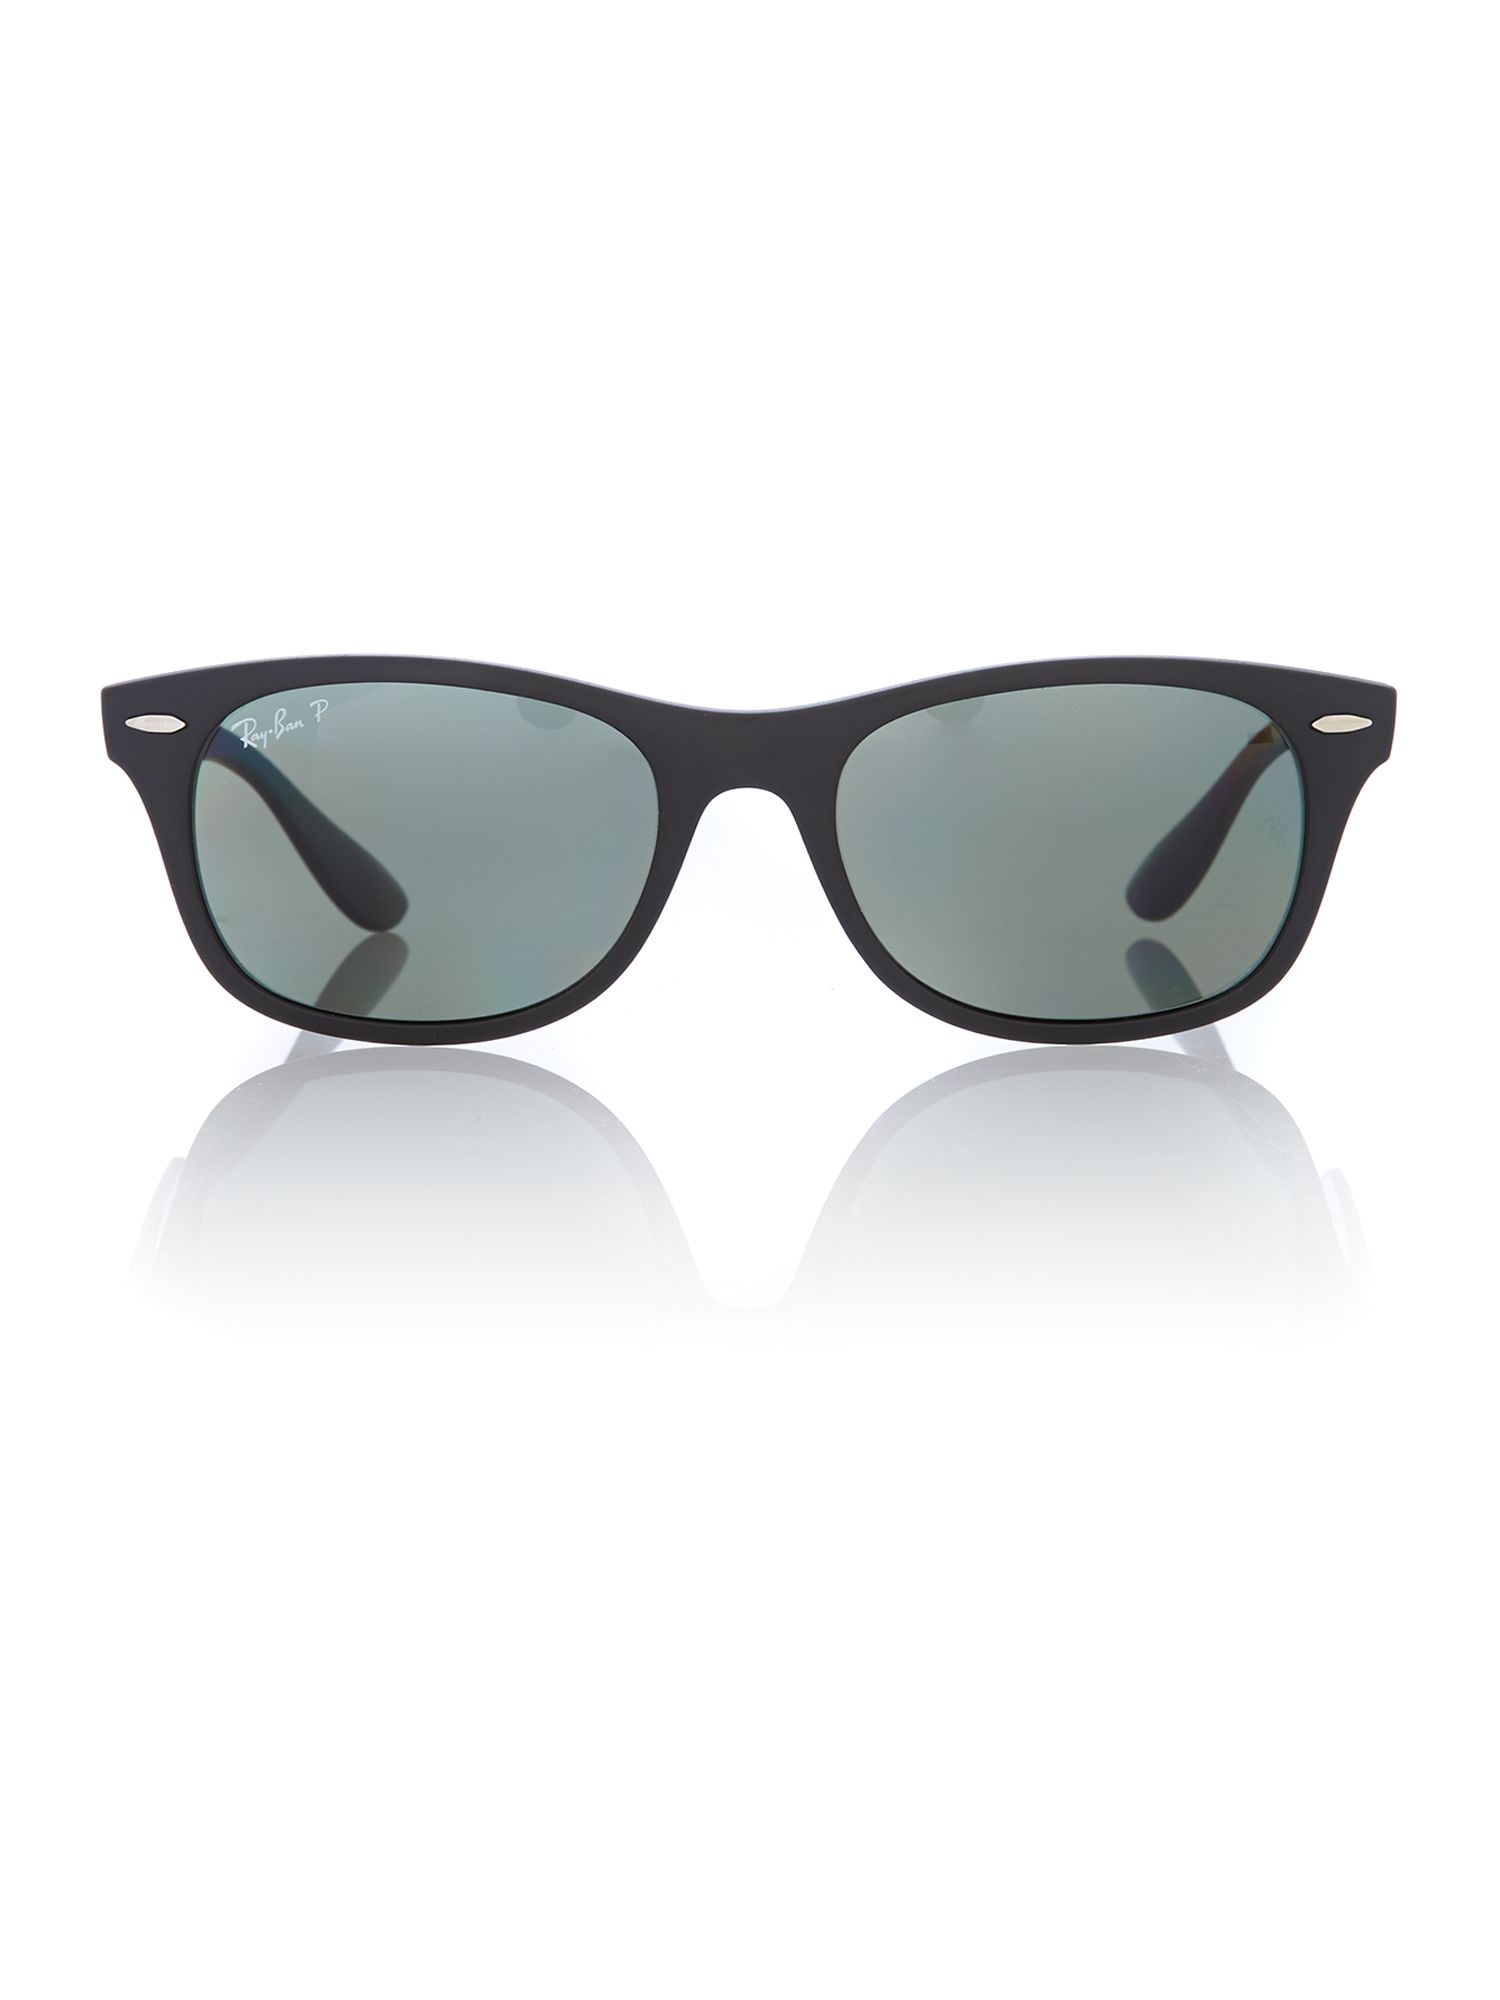 Unisex polar green squared sunglasses